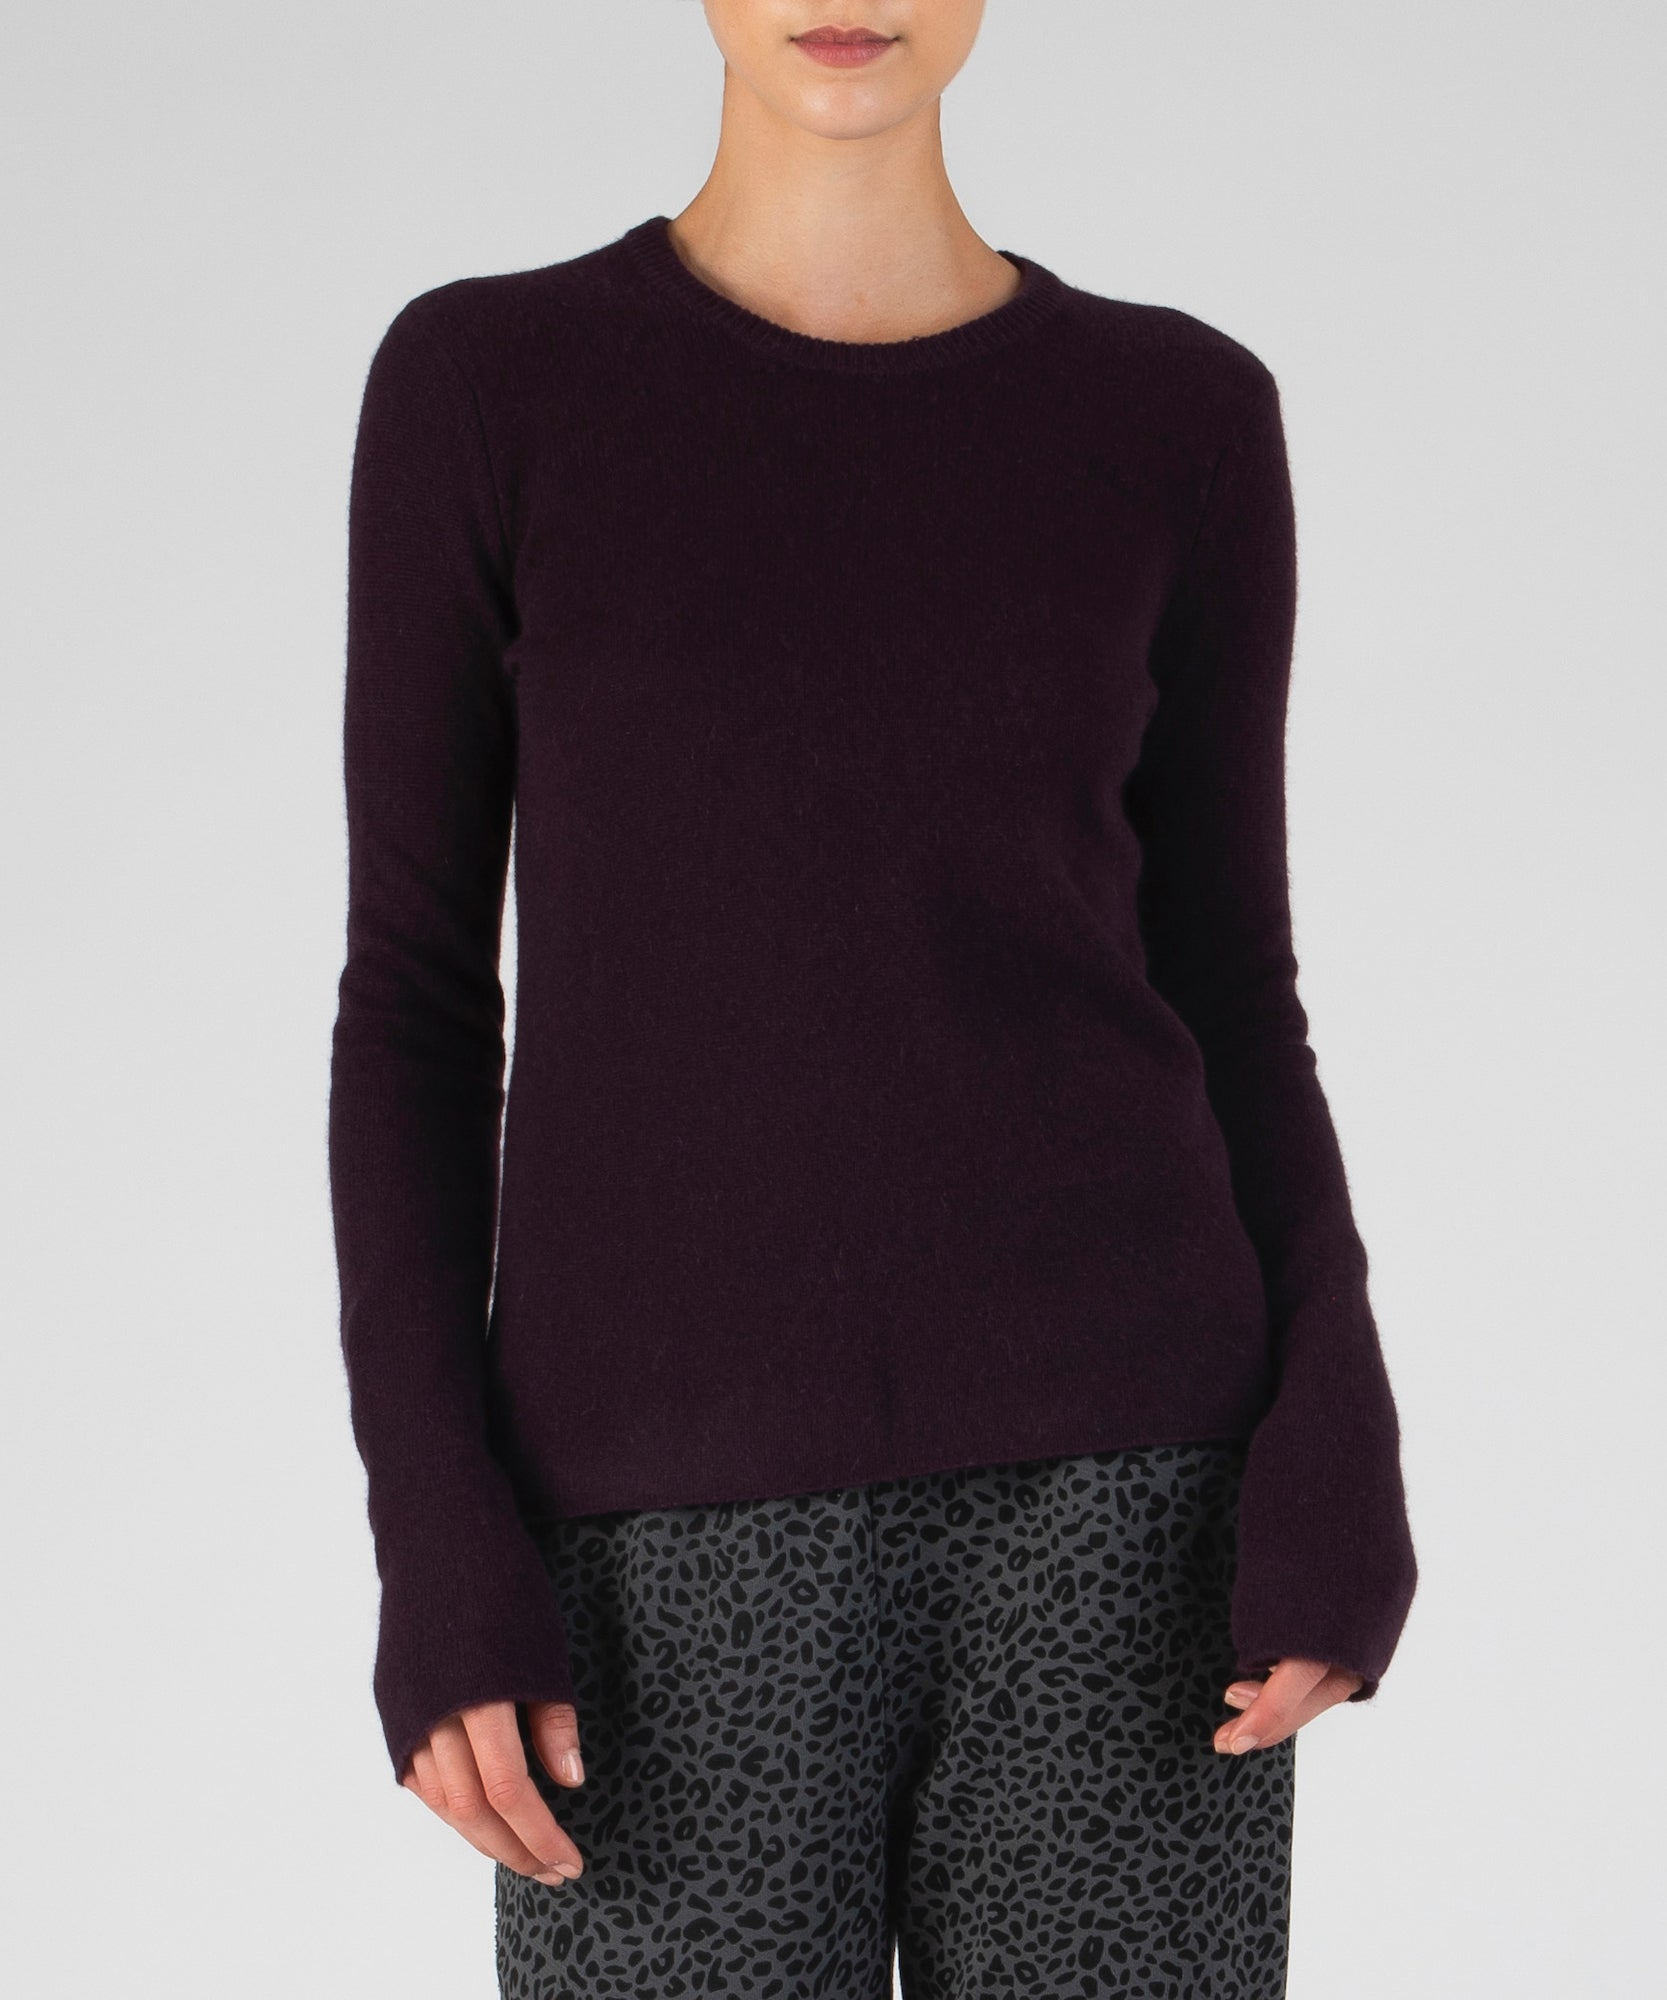 Dark Maroon Cashmere Crew Neck Sweater - Women's Luxe Sweater by ATM Anthony Thomas Melillo